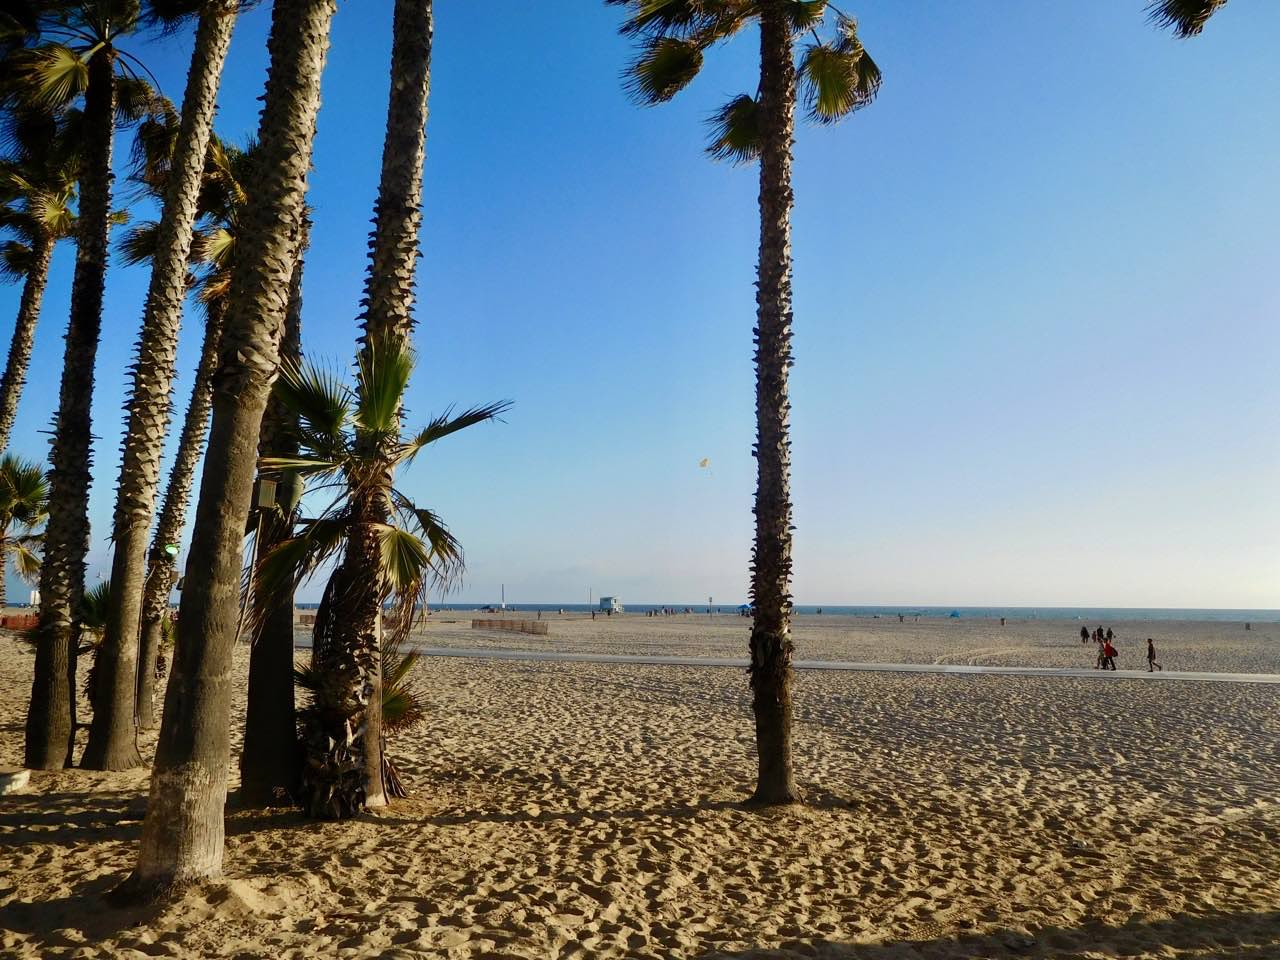 3 Days in L.A. - Venice Beach (1)